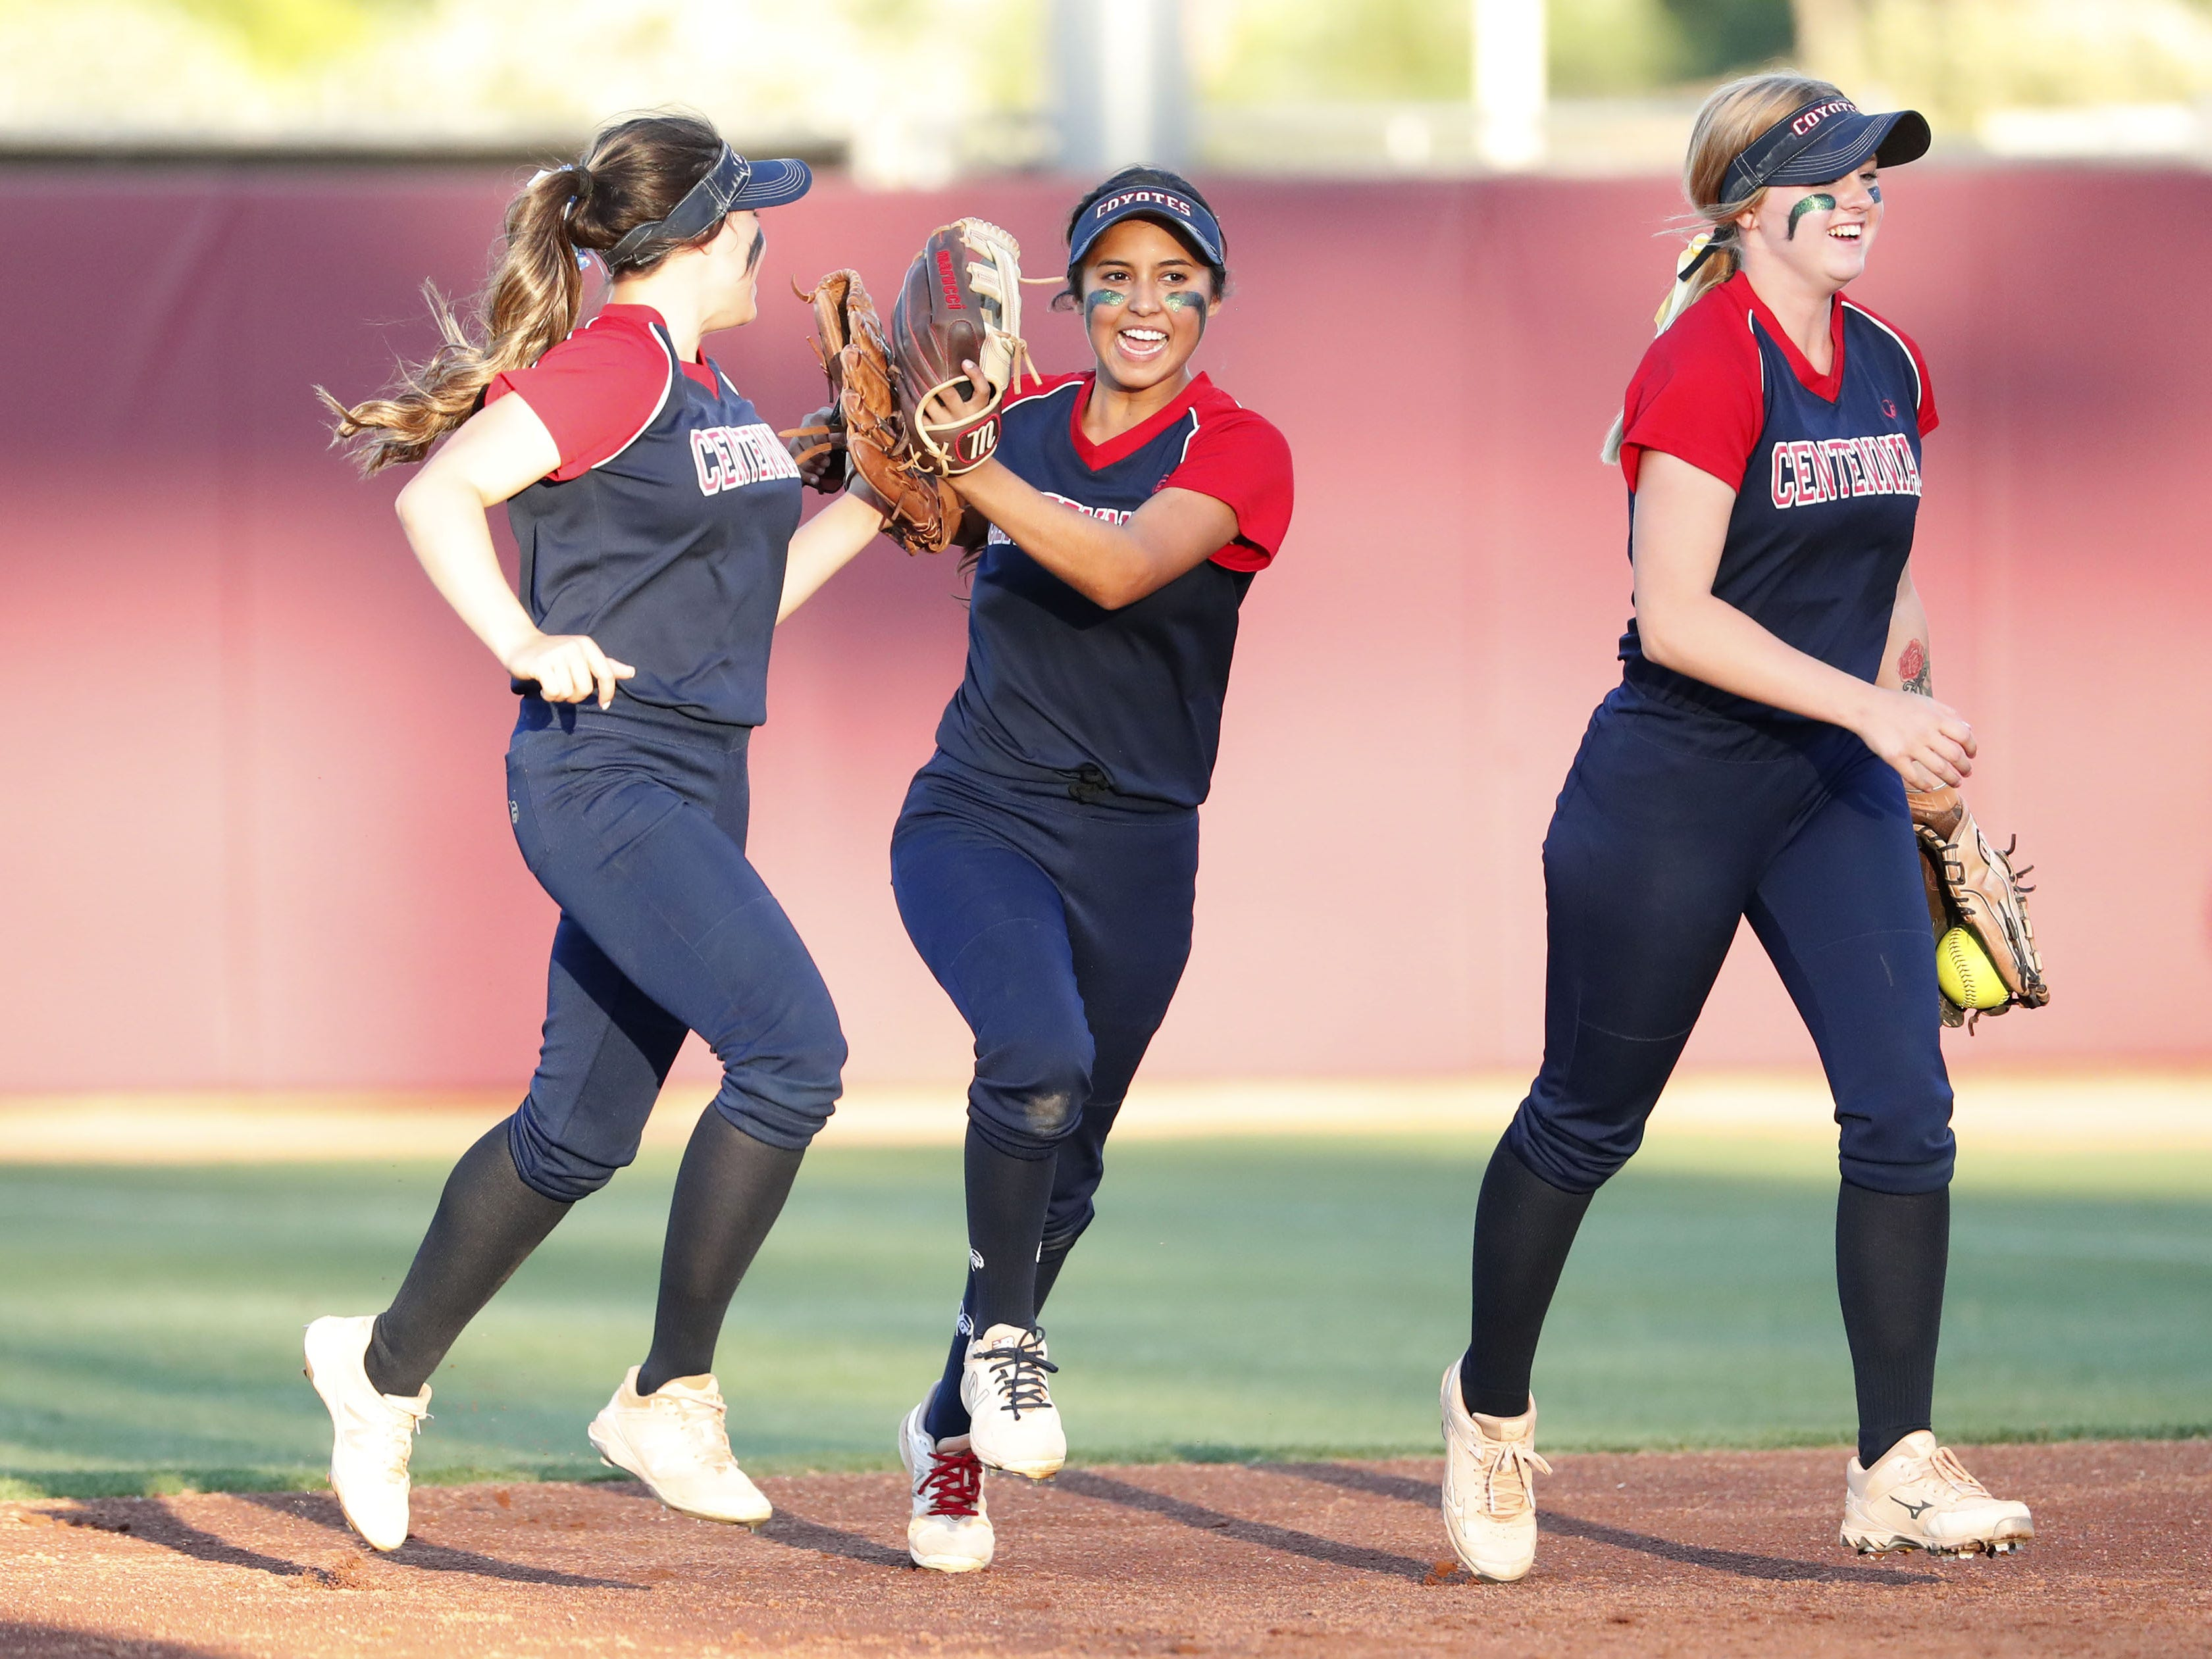 Centennial center fielder Jaydin Gonzalez (left) high-fives Natalie Vasquez between innings against Ironwood Ridge during the 5A State Softball Championship in Tempe, Ariz. May 13, 2019.